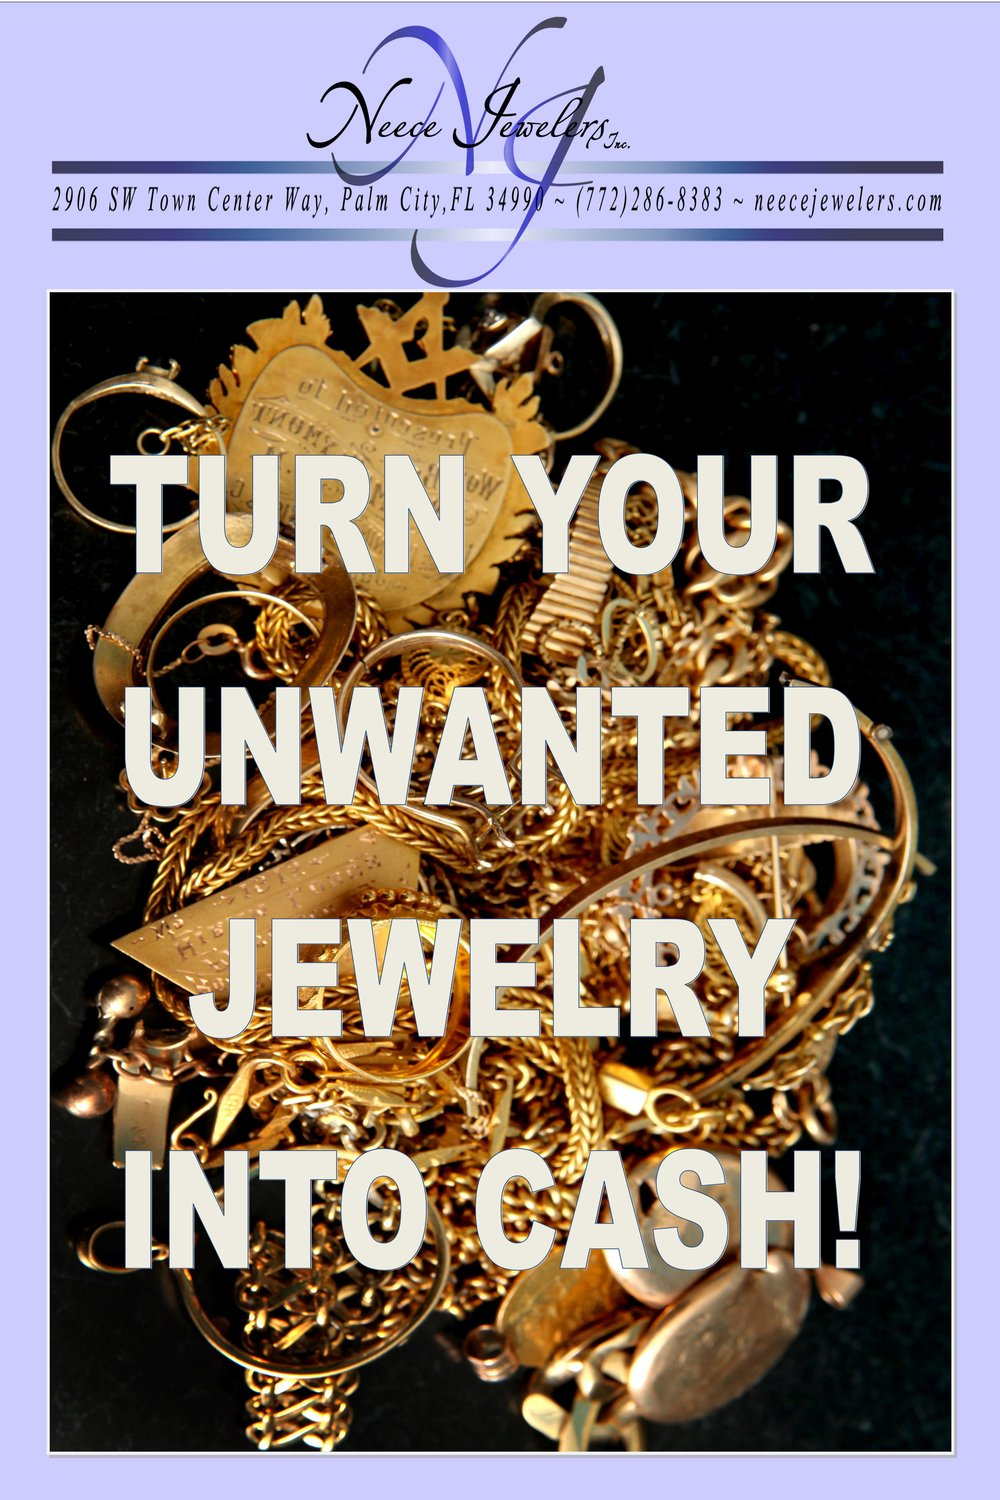 Turn your unwanted jewelry into cash.jpg